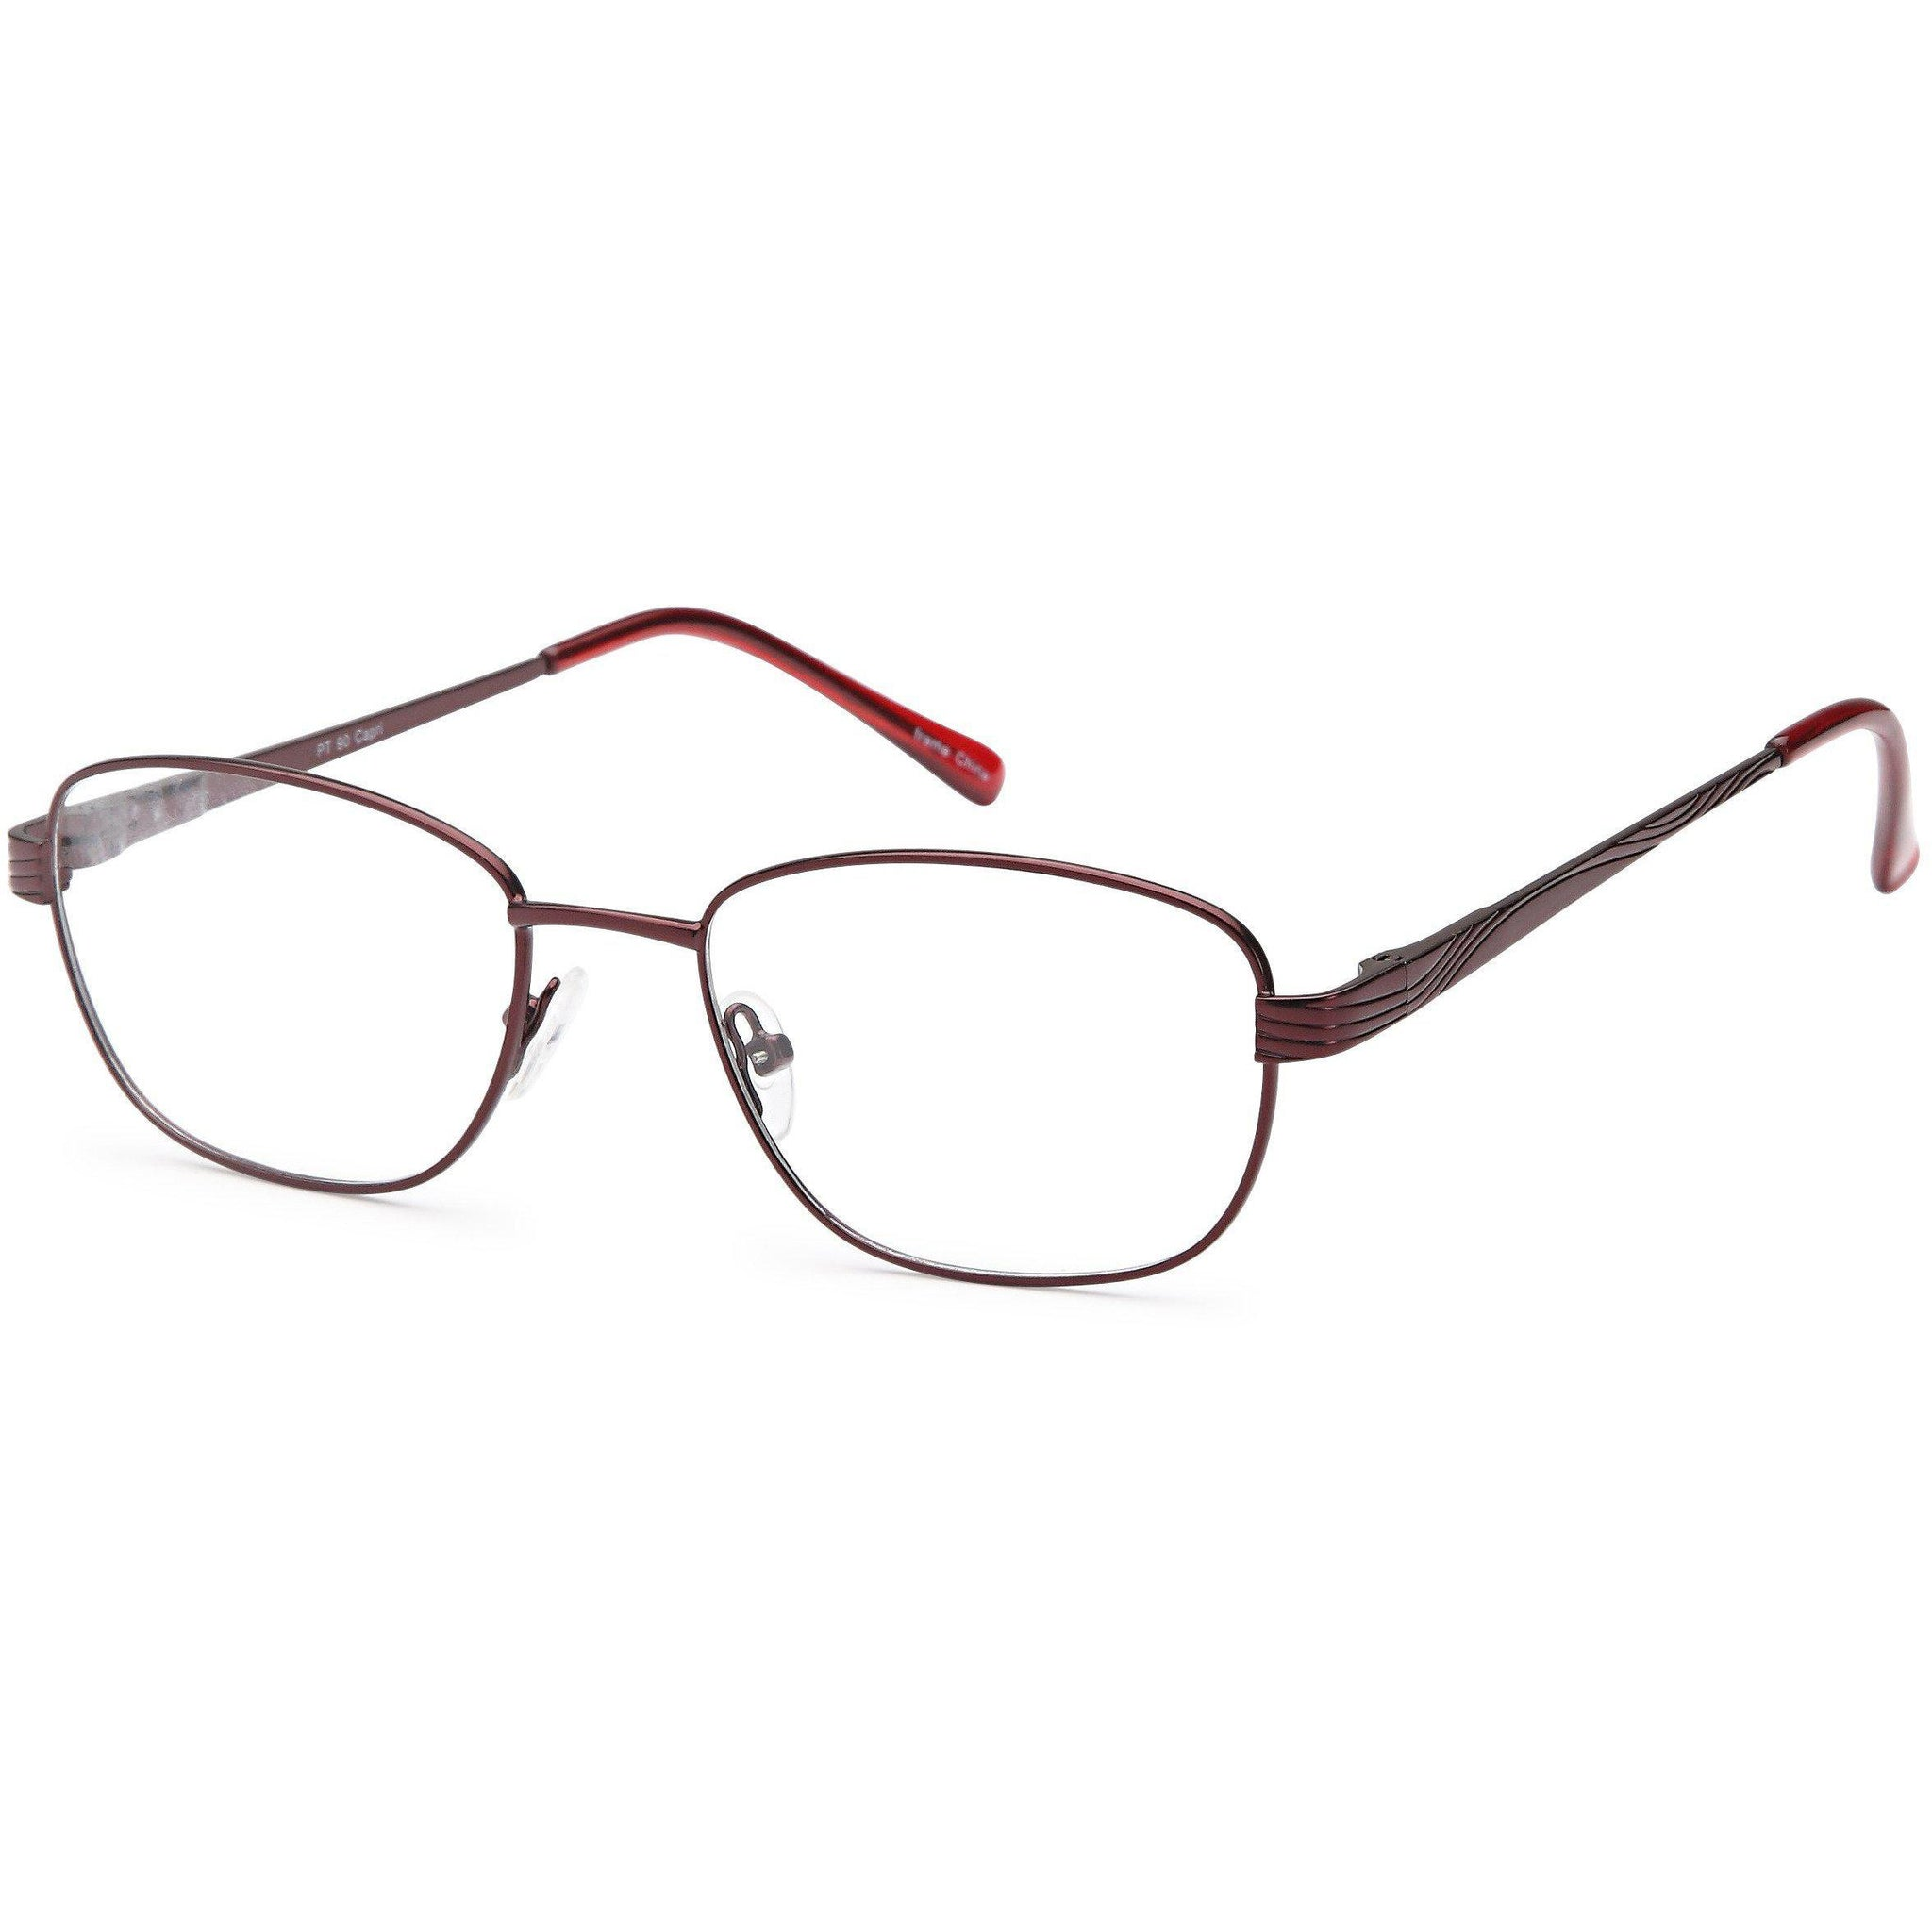 Appletree Prescription Glasses PT 90 Eyeglasses Frame